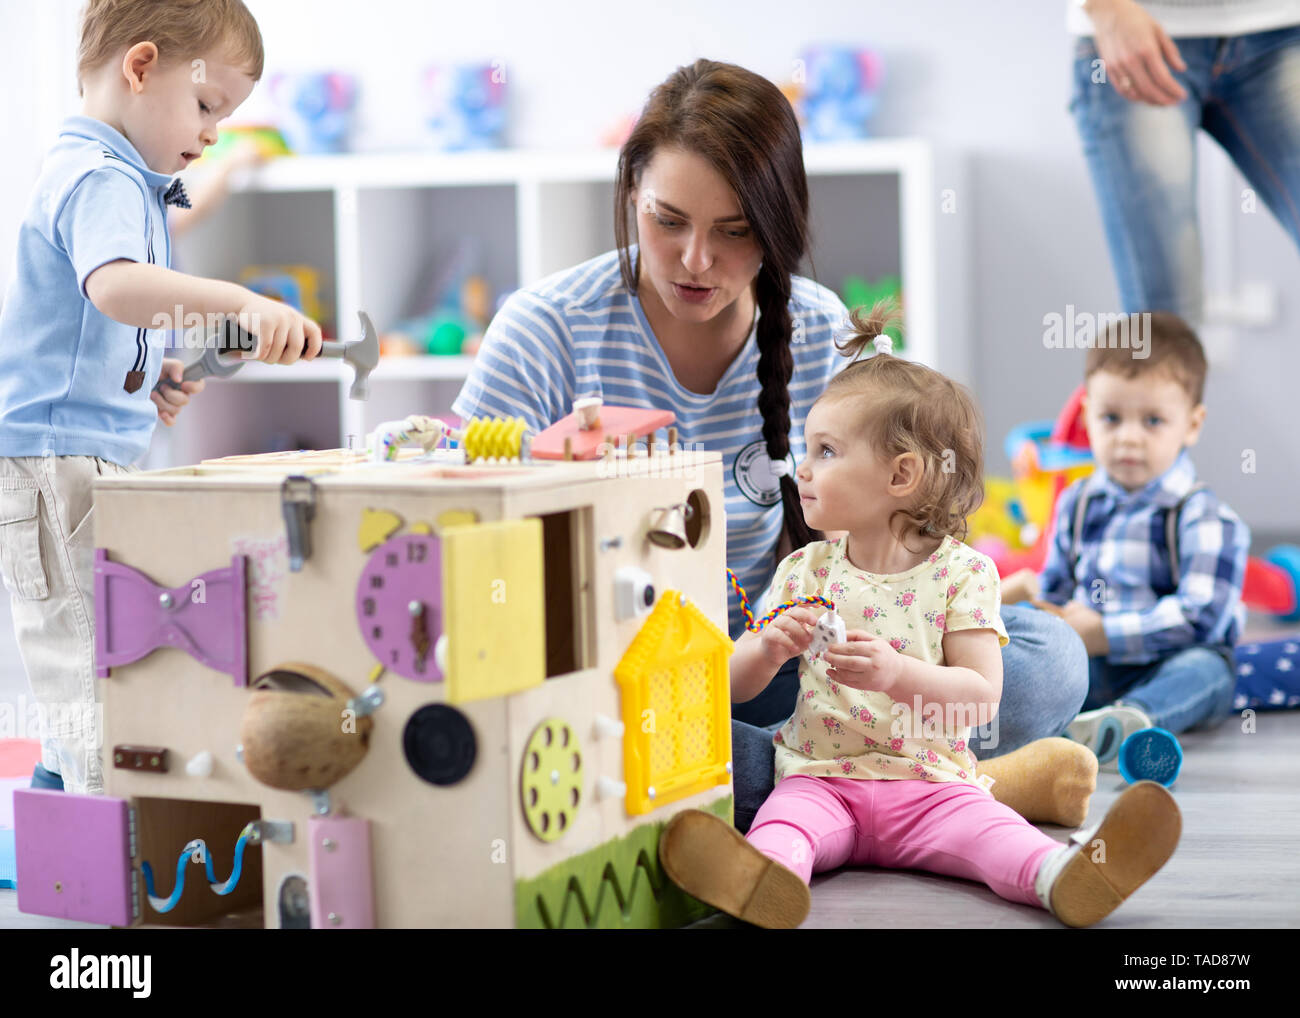 Babies playing with educational toys in nursery - Stock Image